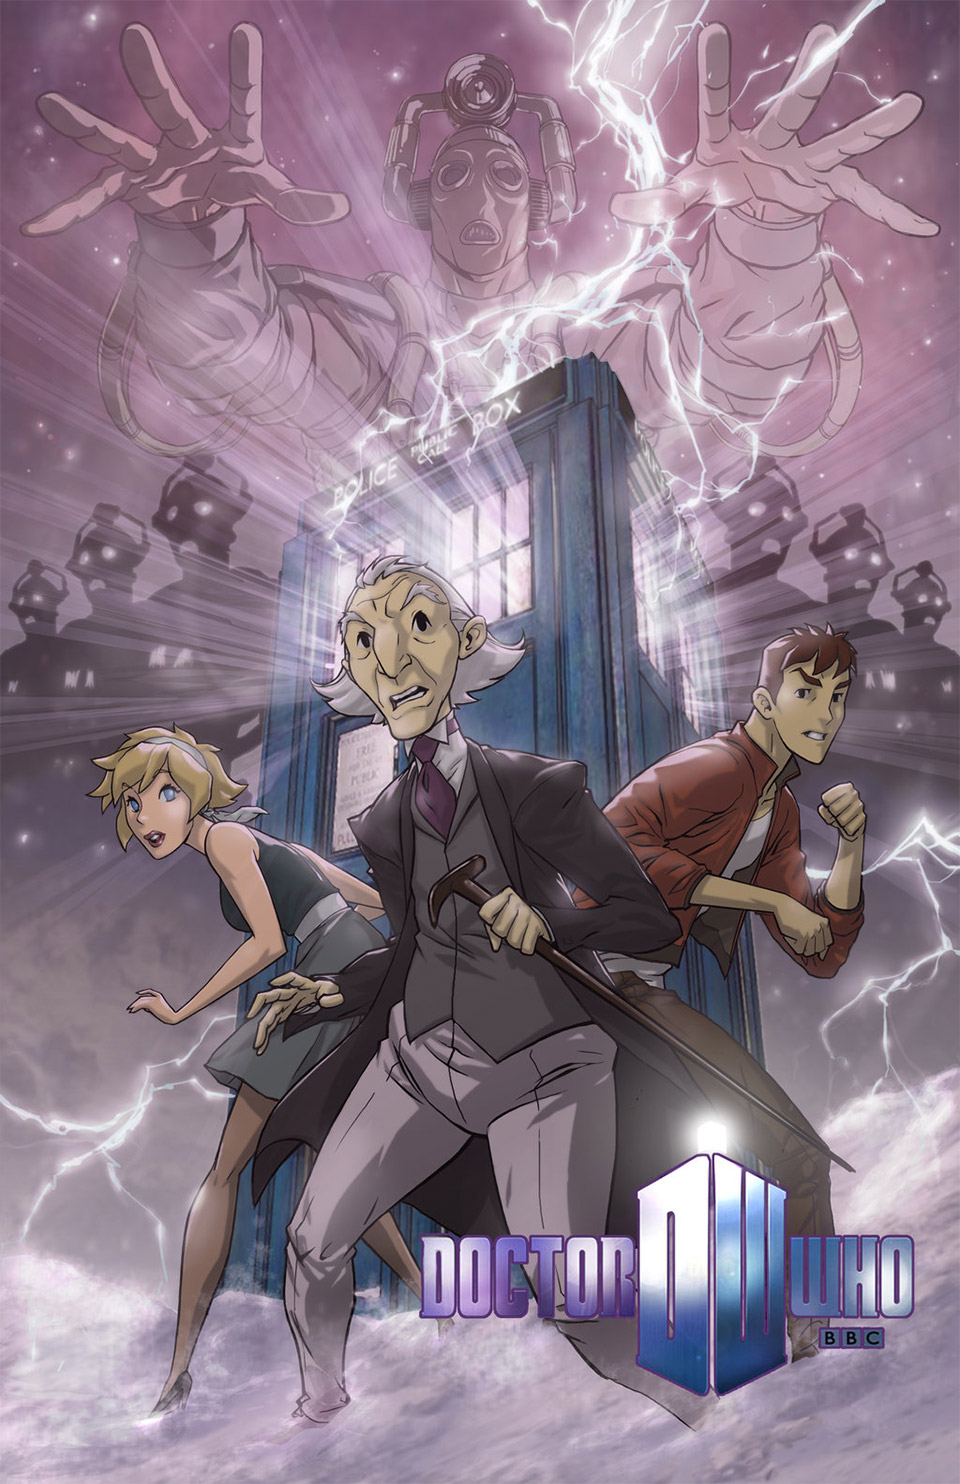 Doctor Who Animated Series Concept Art